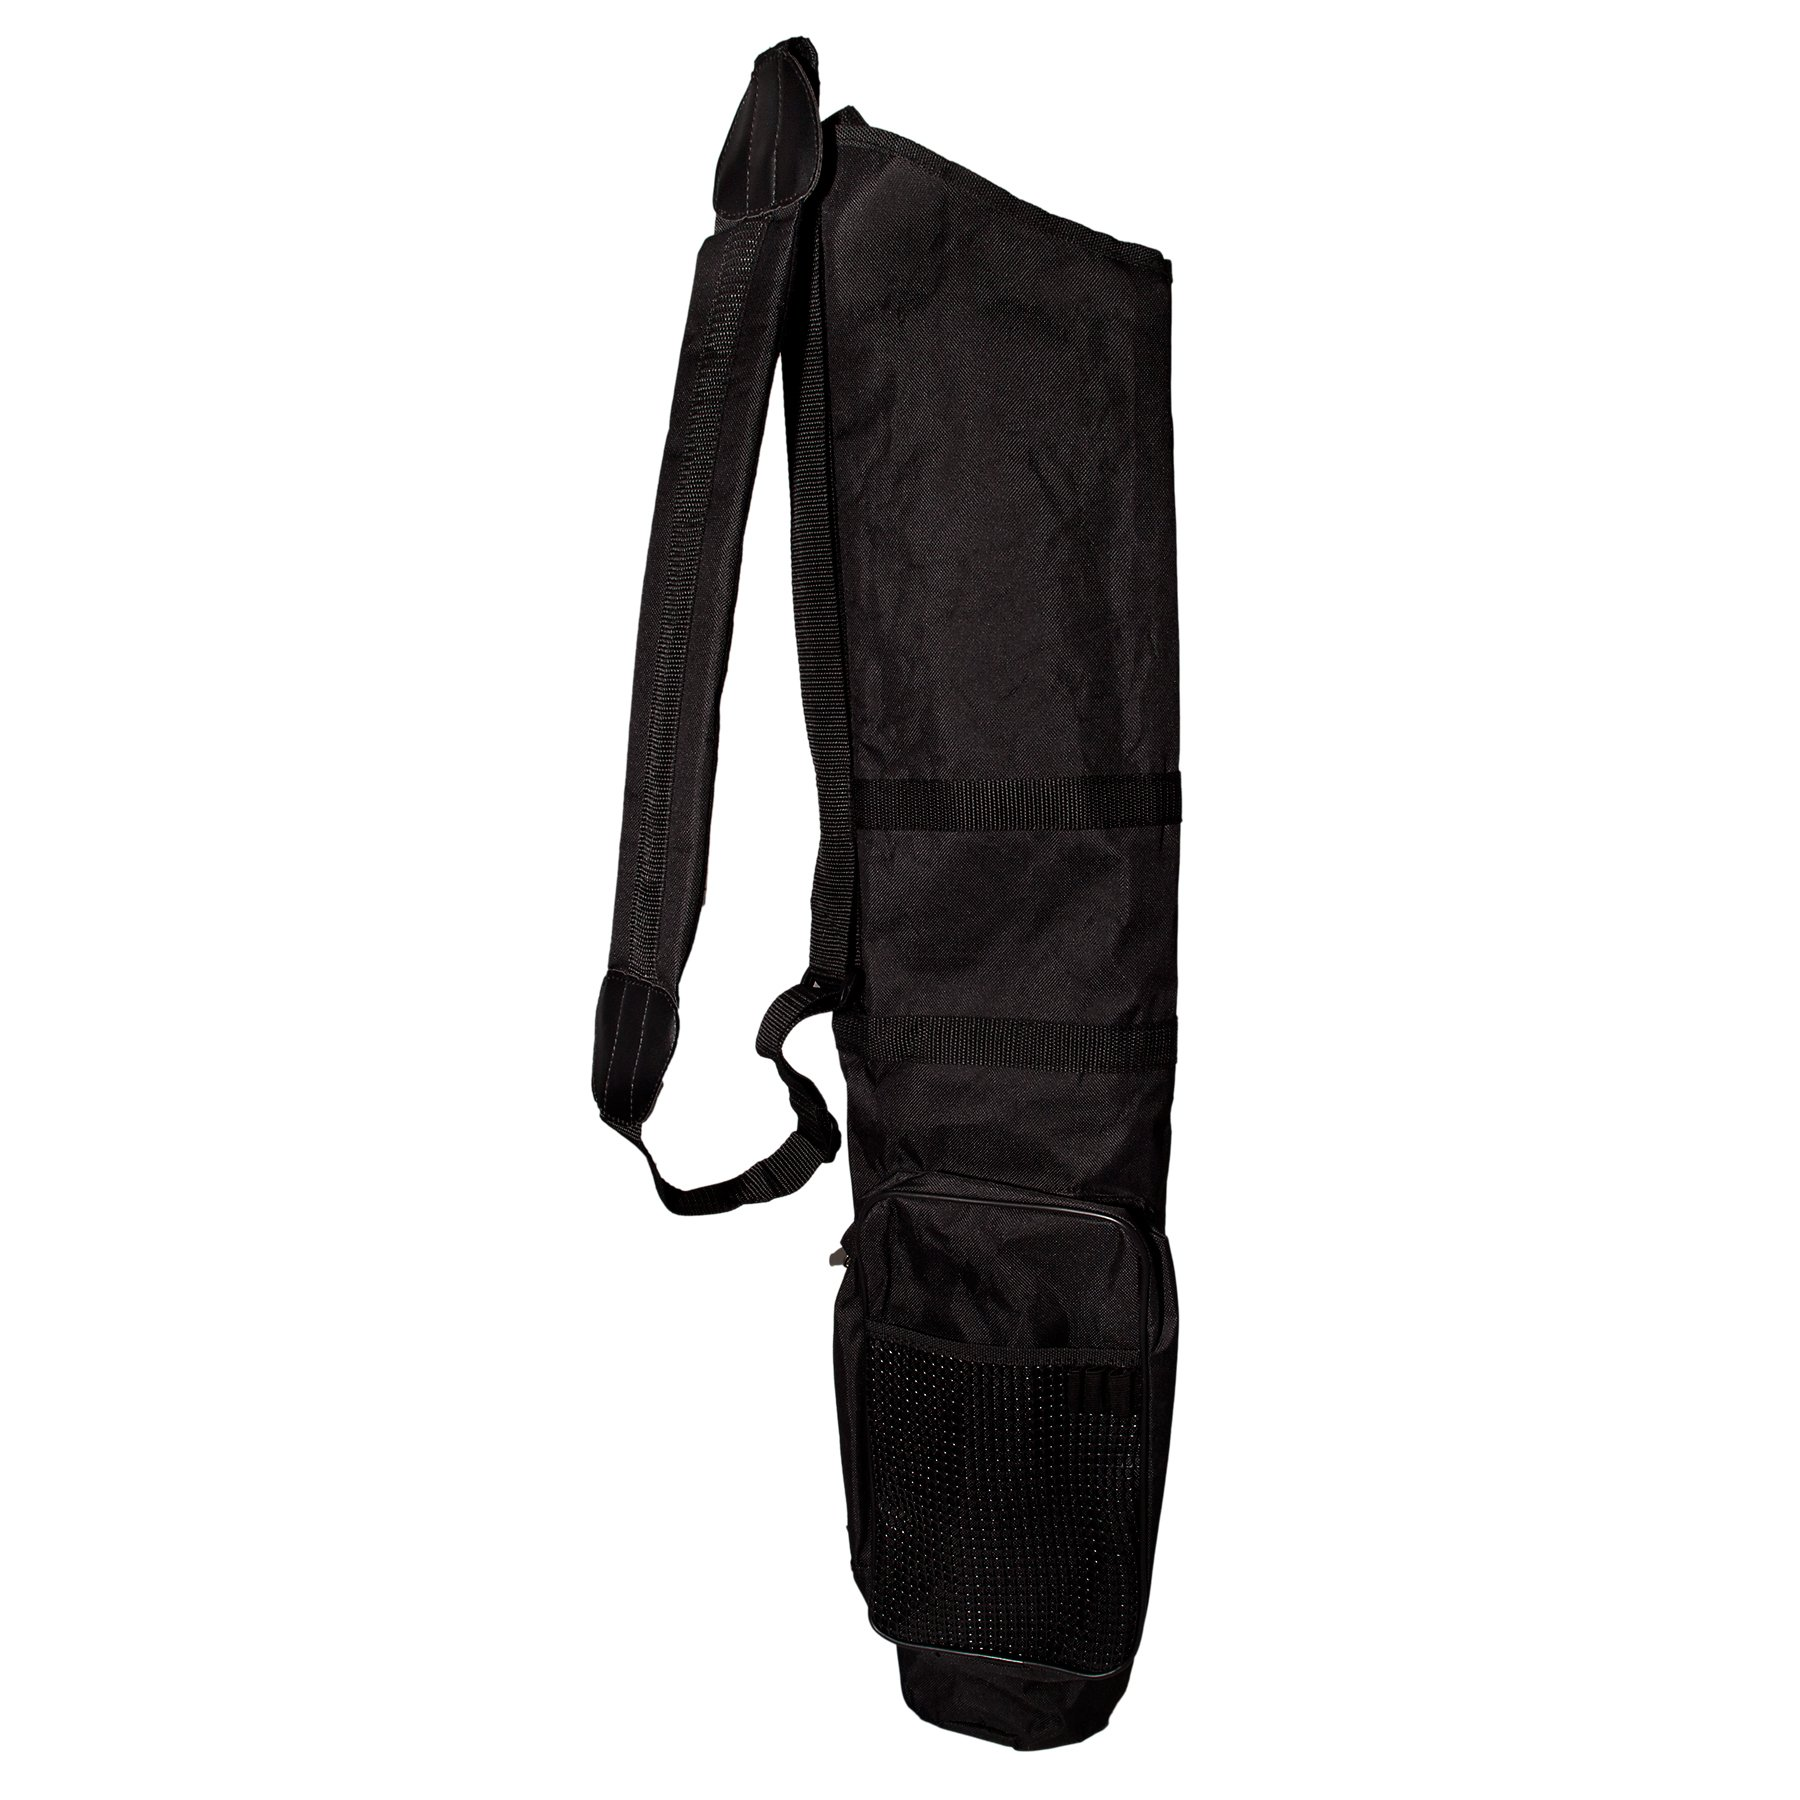 5'' Sunday Bag, Lightweight Carry Bag, Executive Course Golf Bag by ProActive Sports (Image #1)